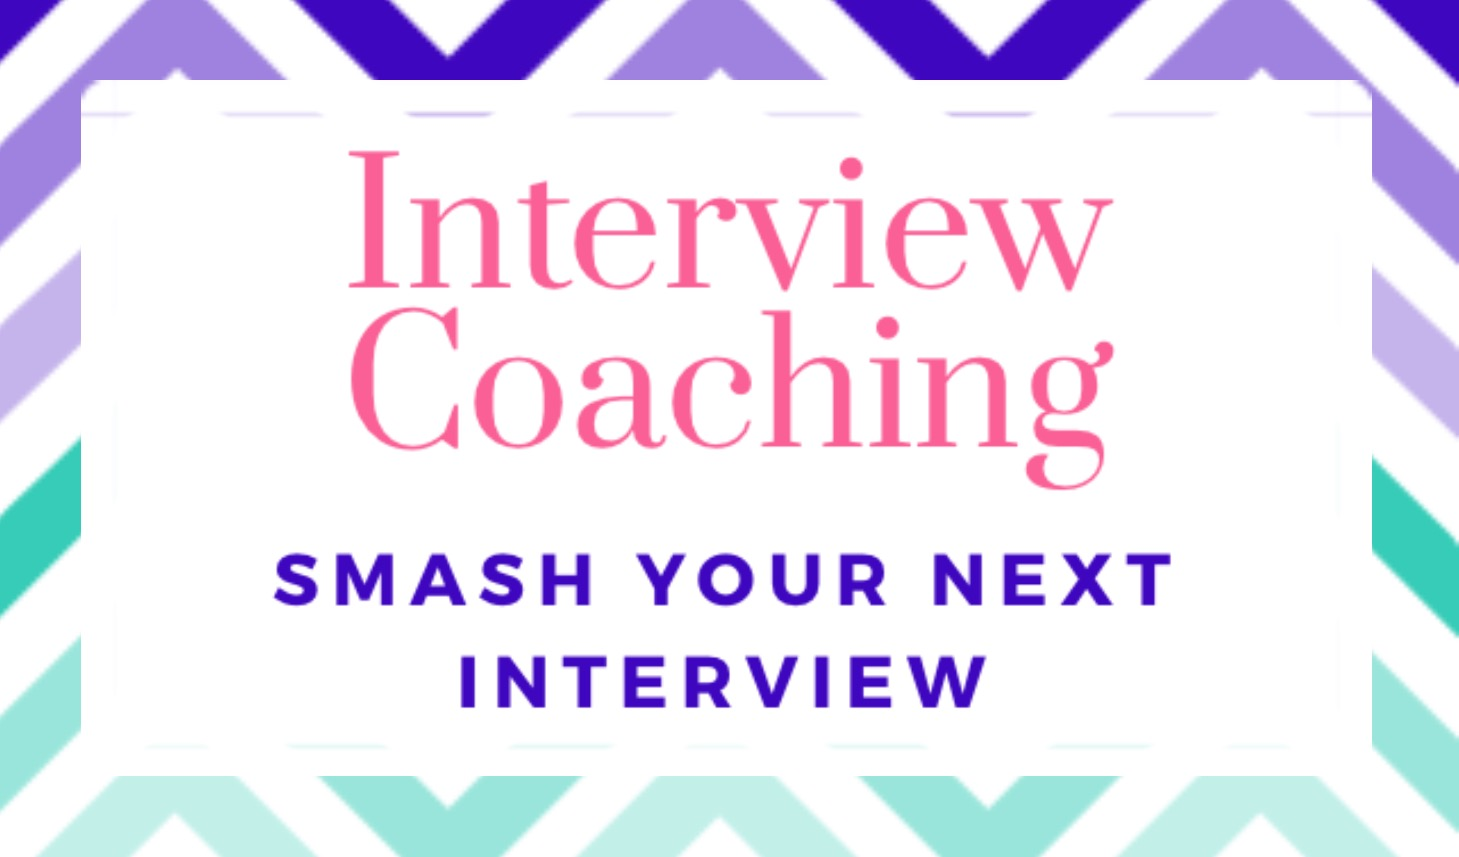 CV Creation Service combined with Interview coaching